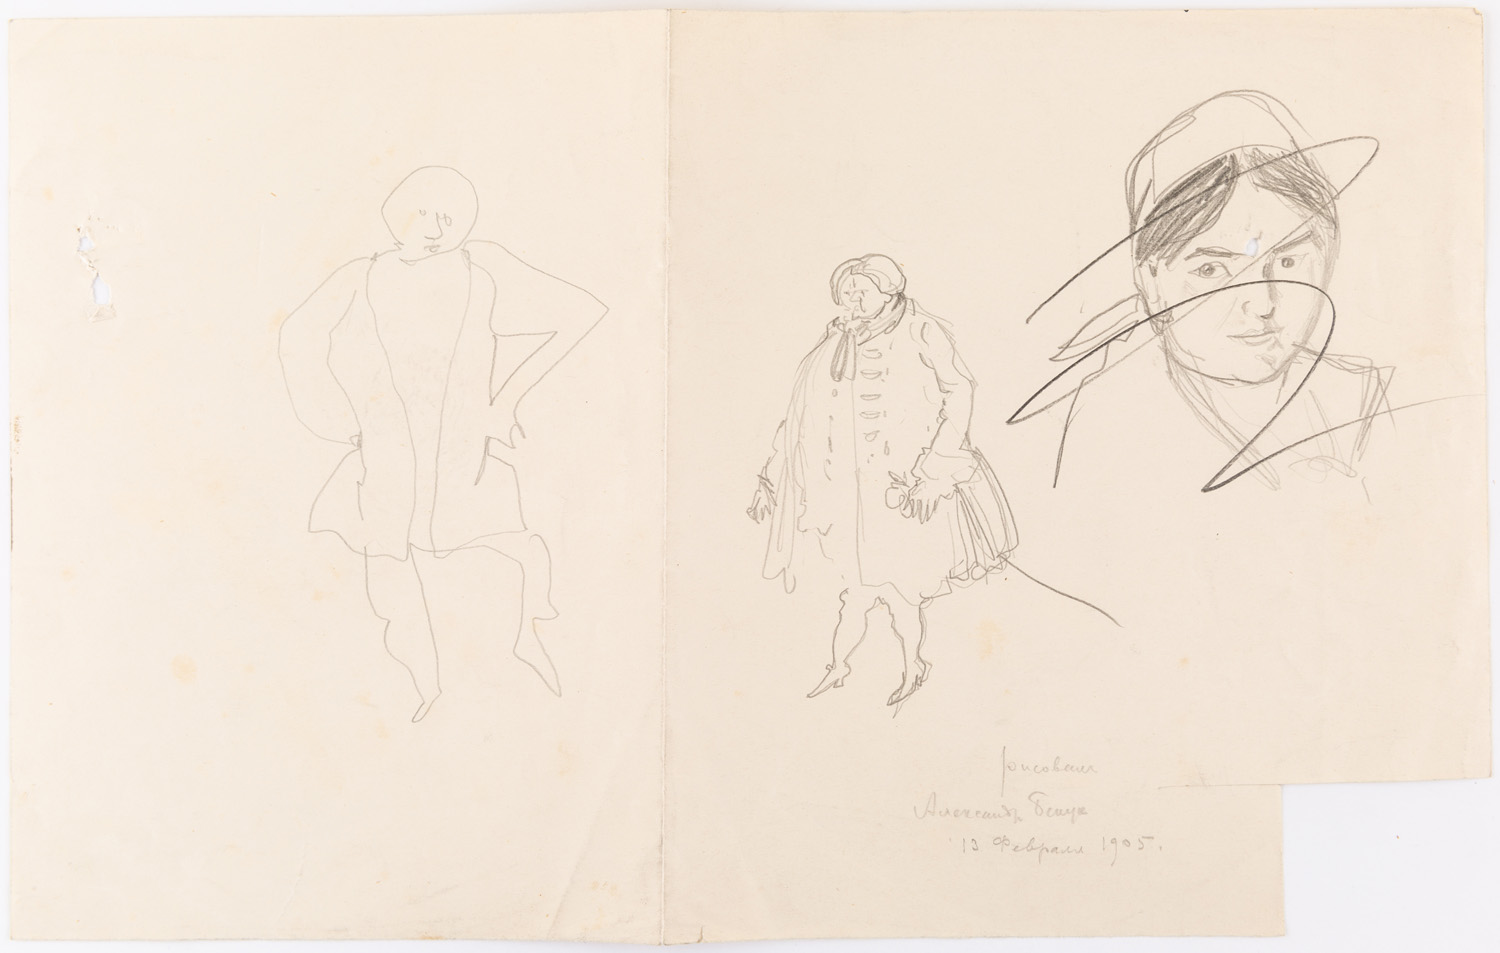 A GROUP OF 7 PORTRAIT DRAWINGS BY LANCERAY, BENOIS, SEREBRYAKOVA AND CHALIAPIN - Image 7 of 13